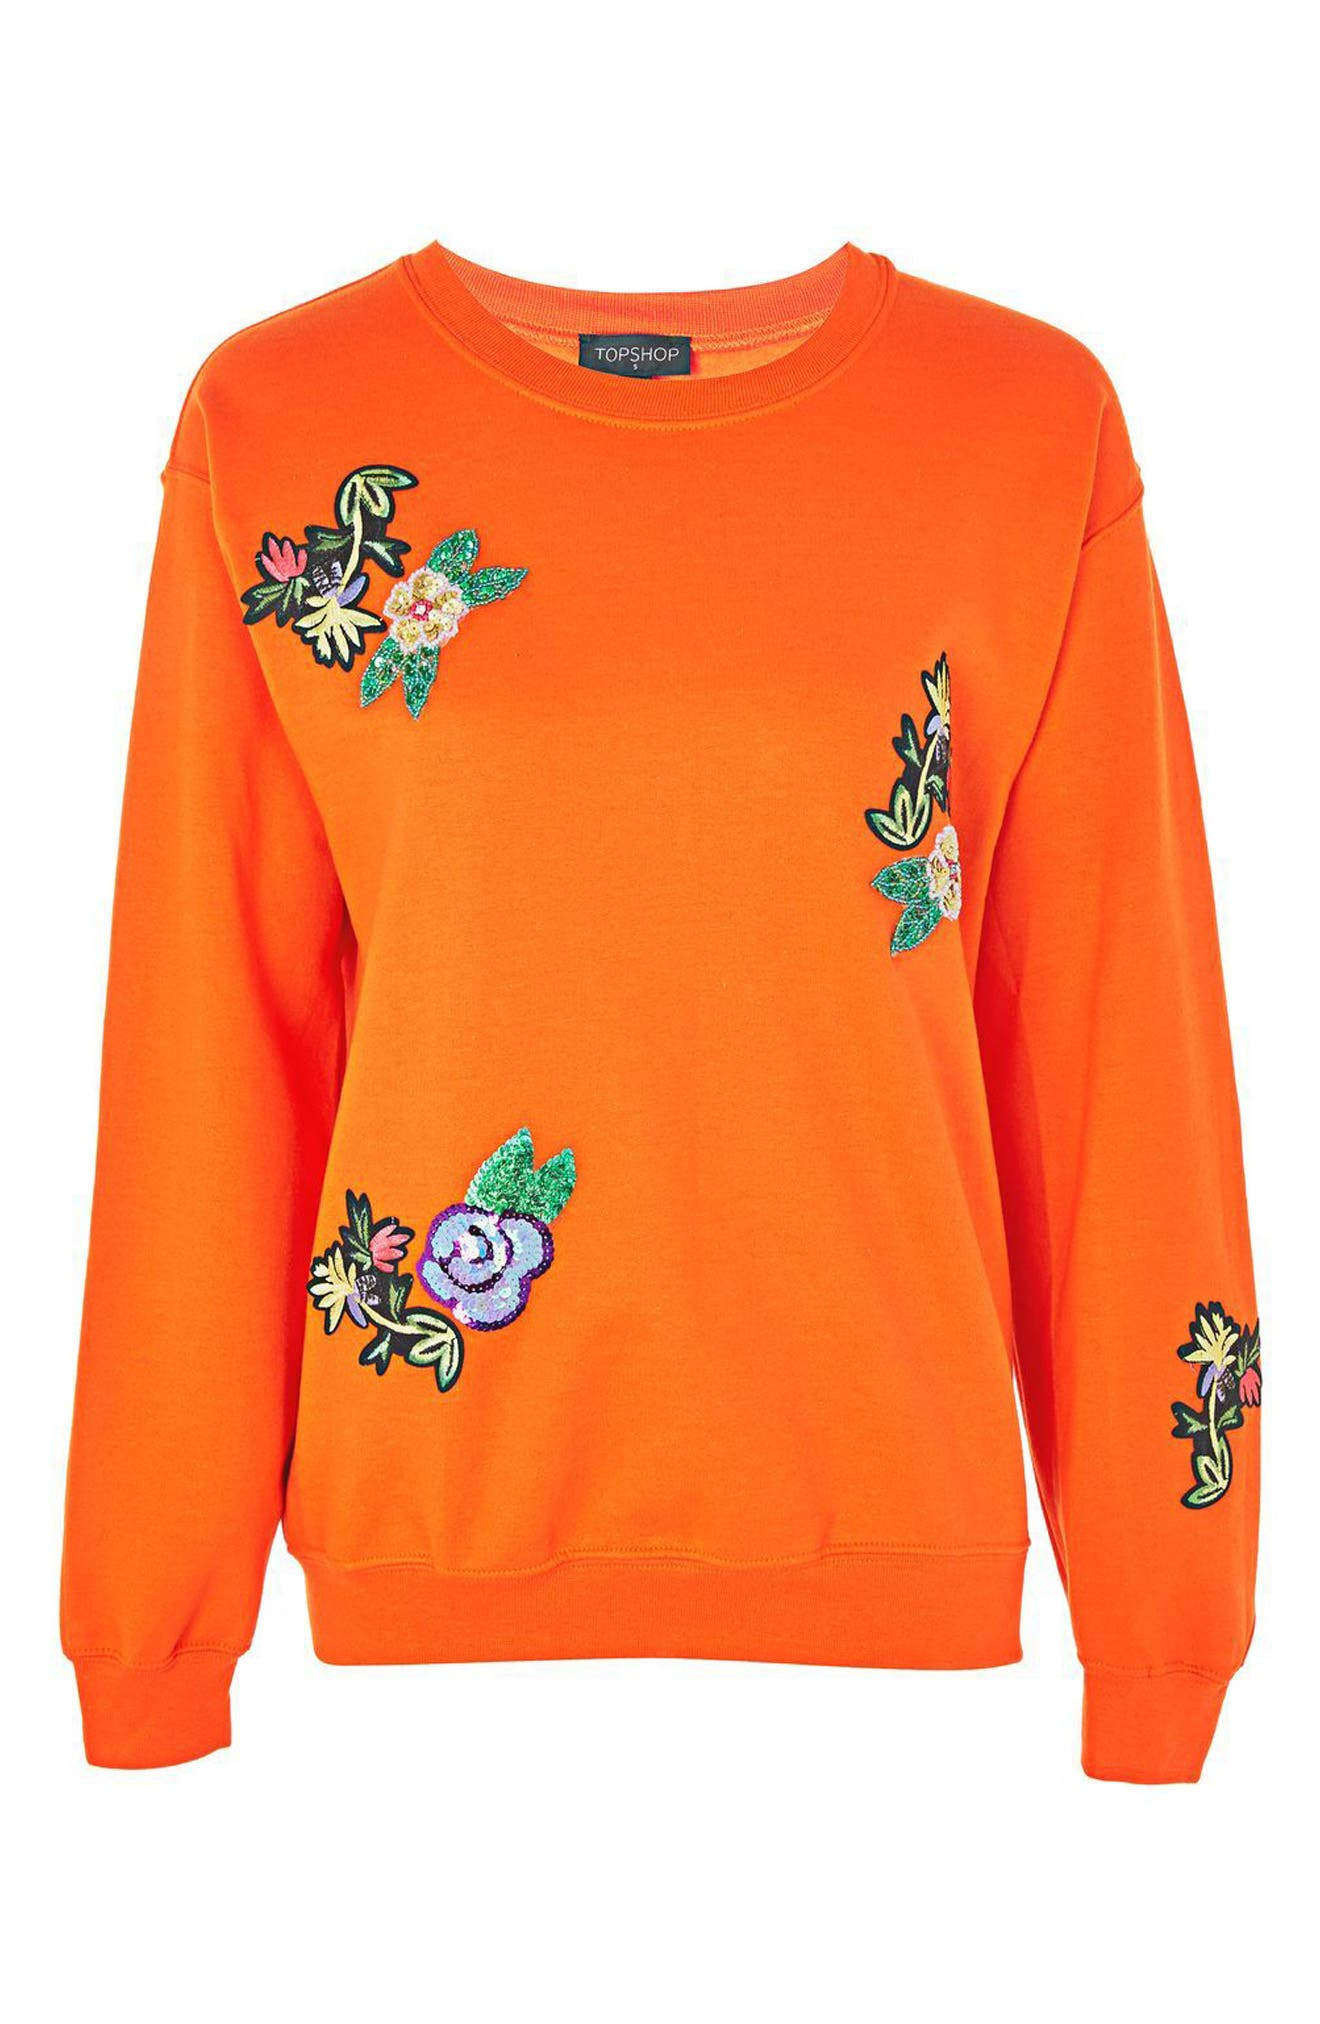 Floral Appliqué Embroidered Sweatshirt,                             Alternate thumbnail 3, color,                             Orange Multi